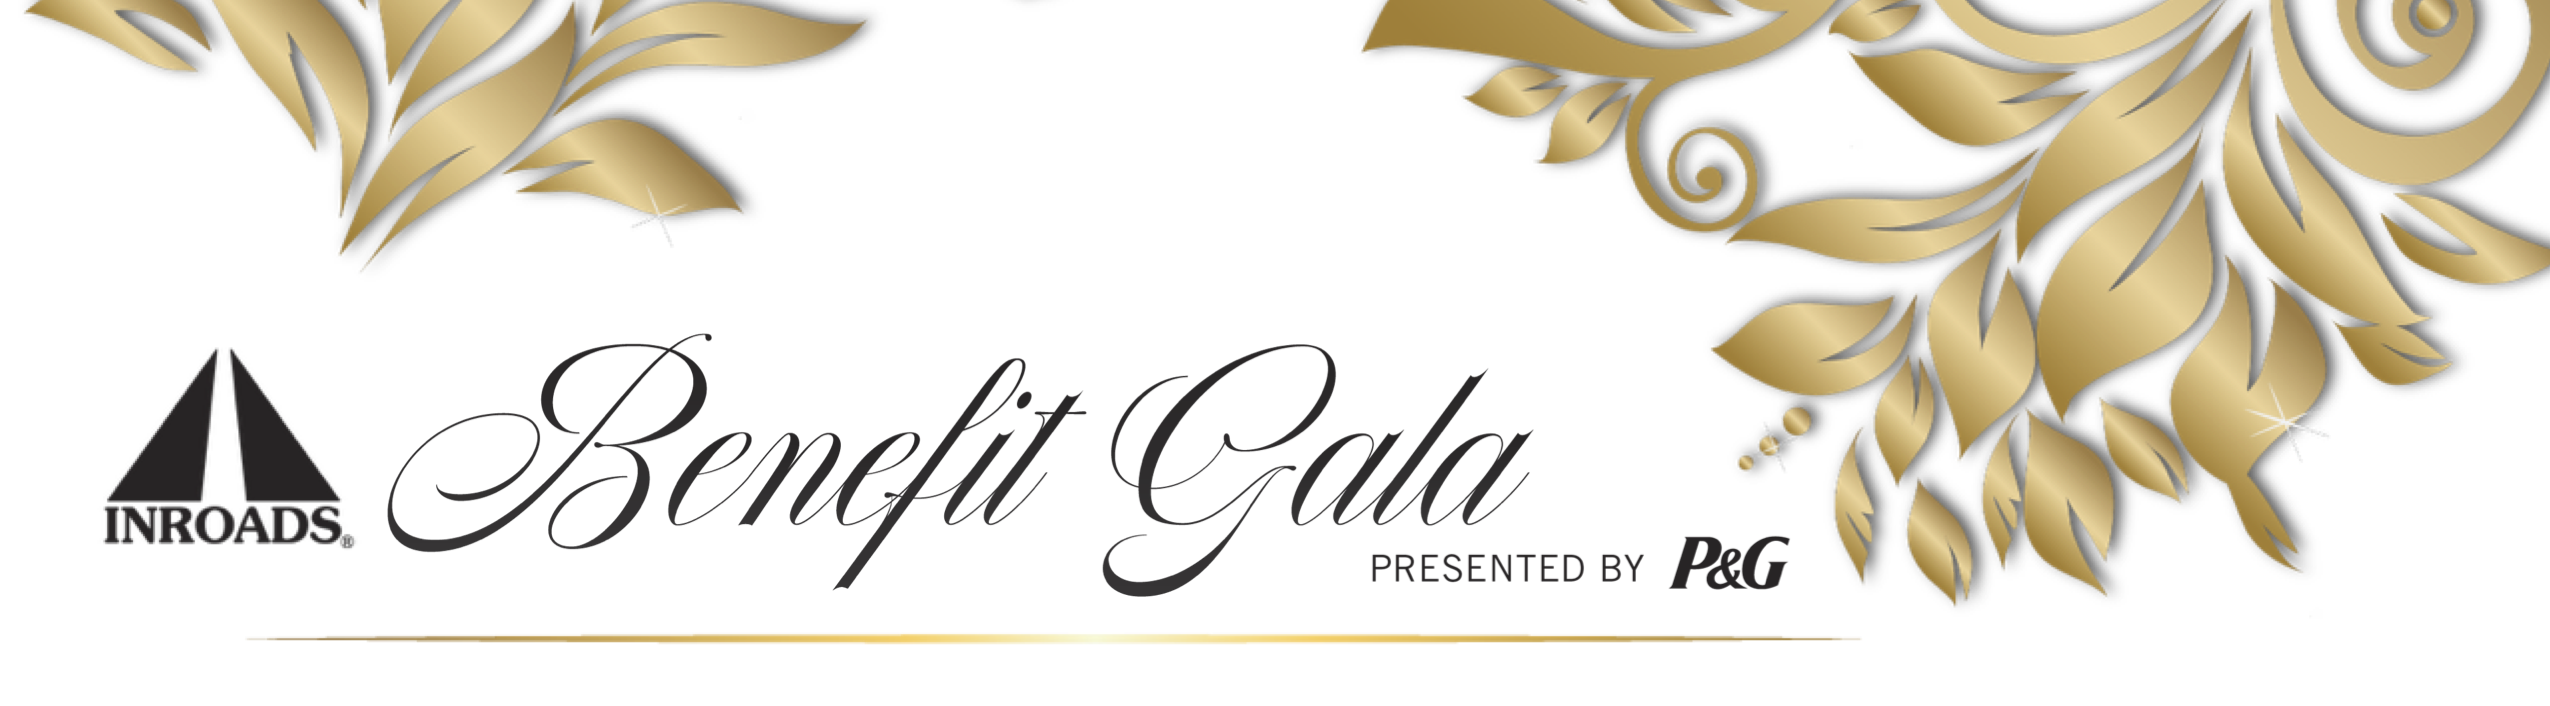 Thank you for supporting our INROADS Benefit Gala | INROADS